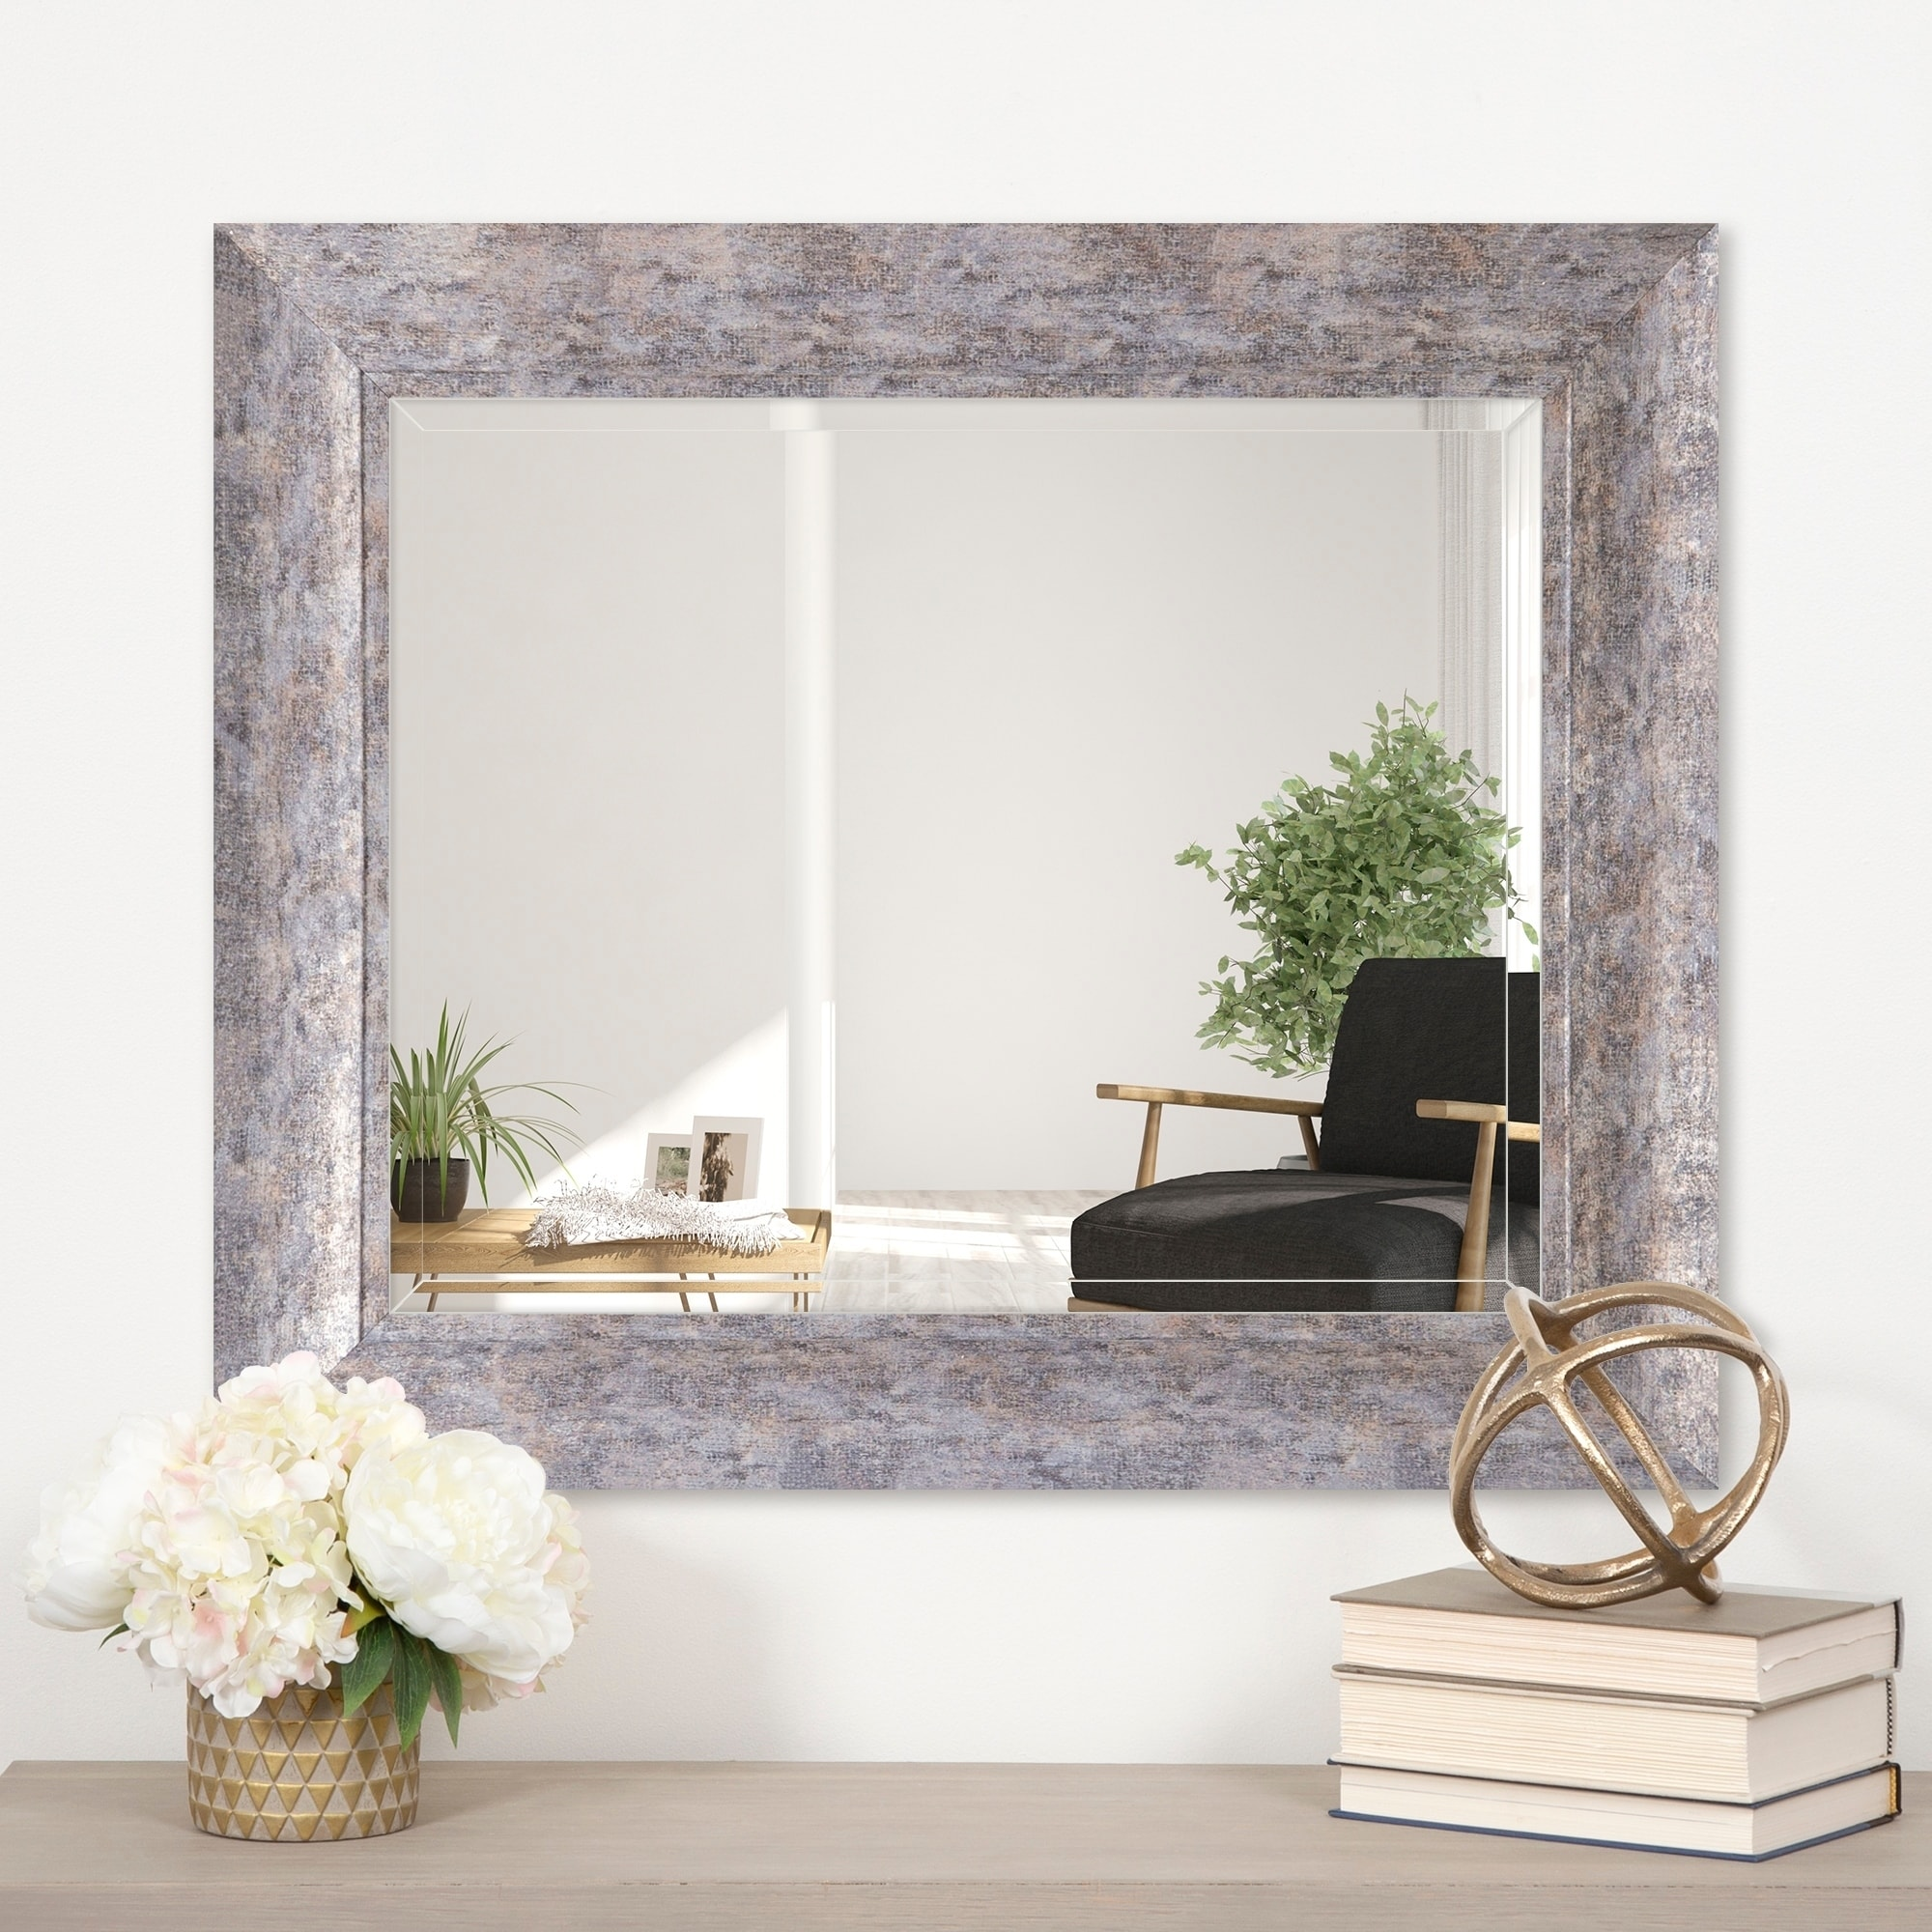 Silver Rectangular Mirrors Online At Our Best Decorative Accessories Deals